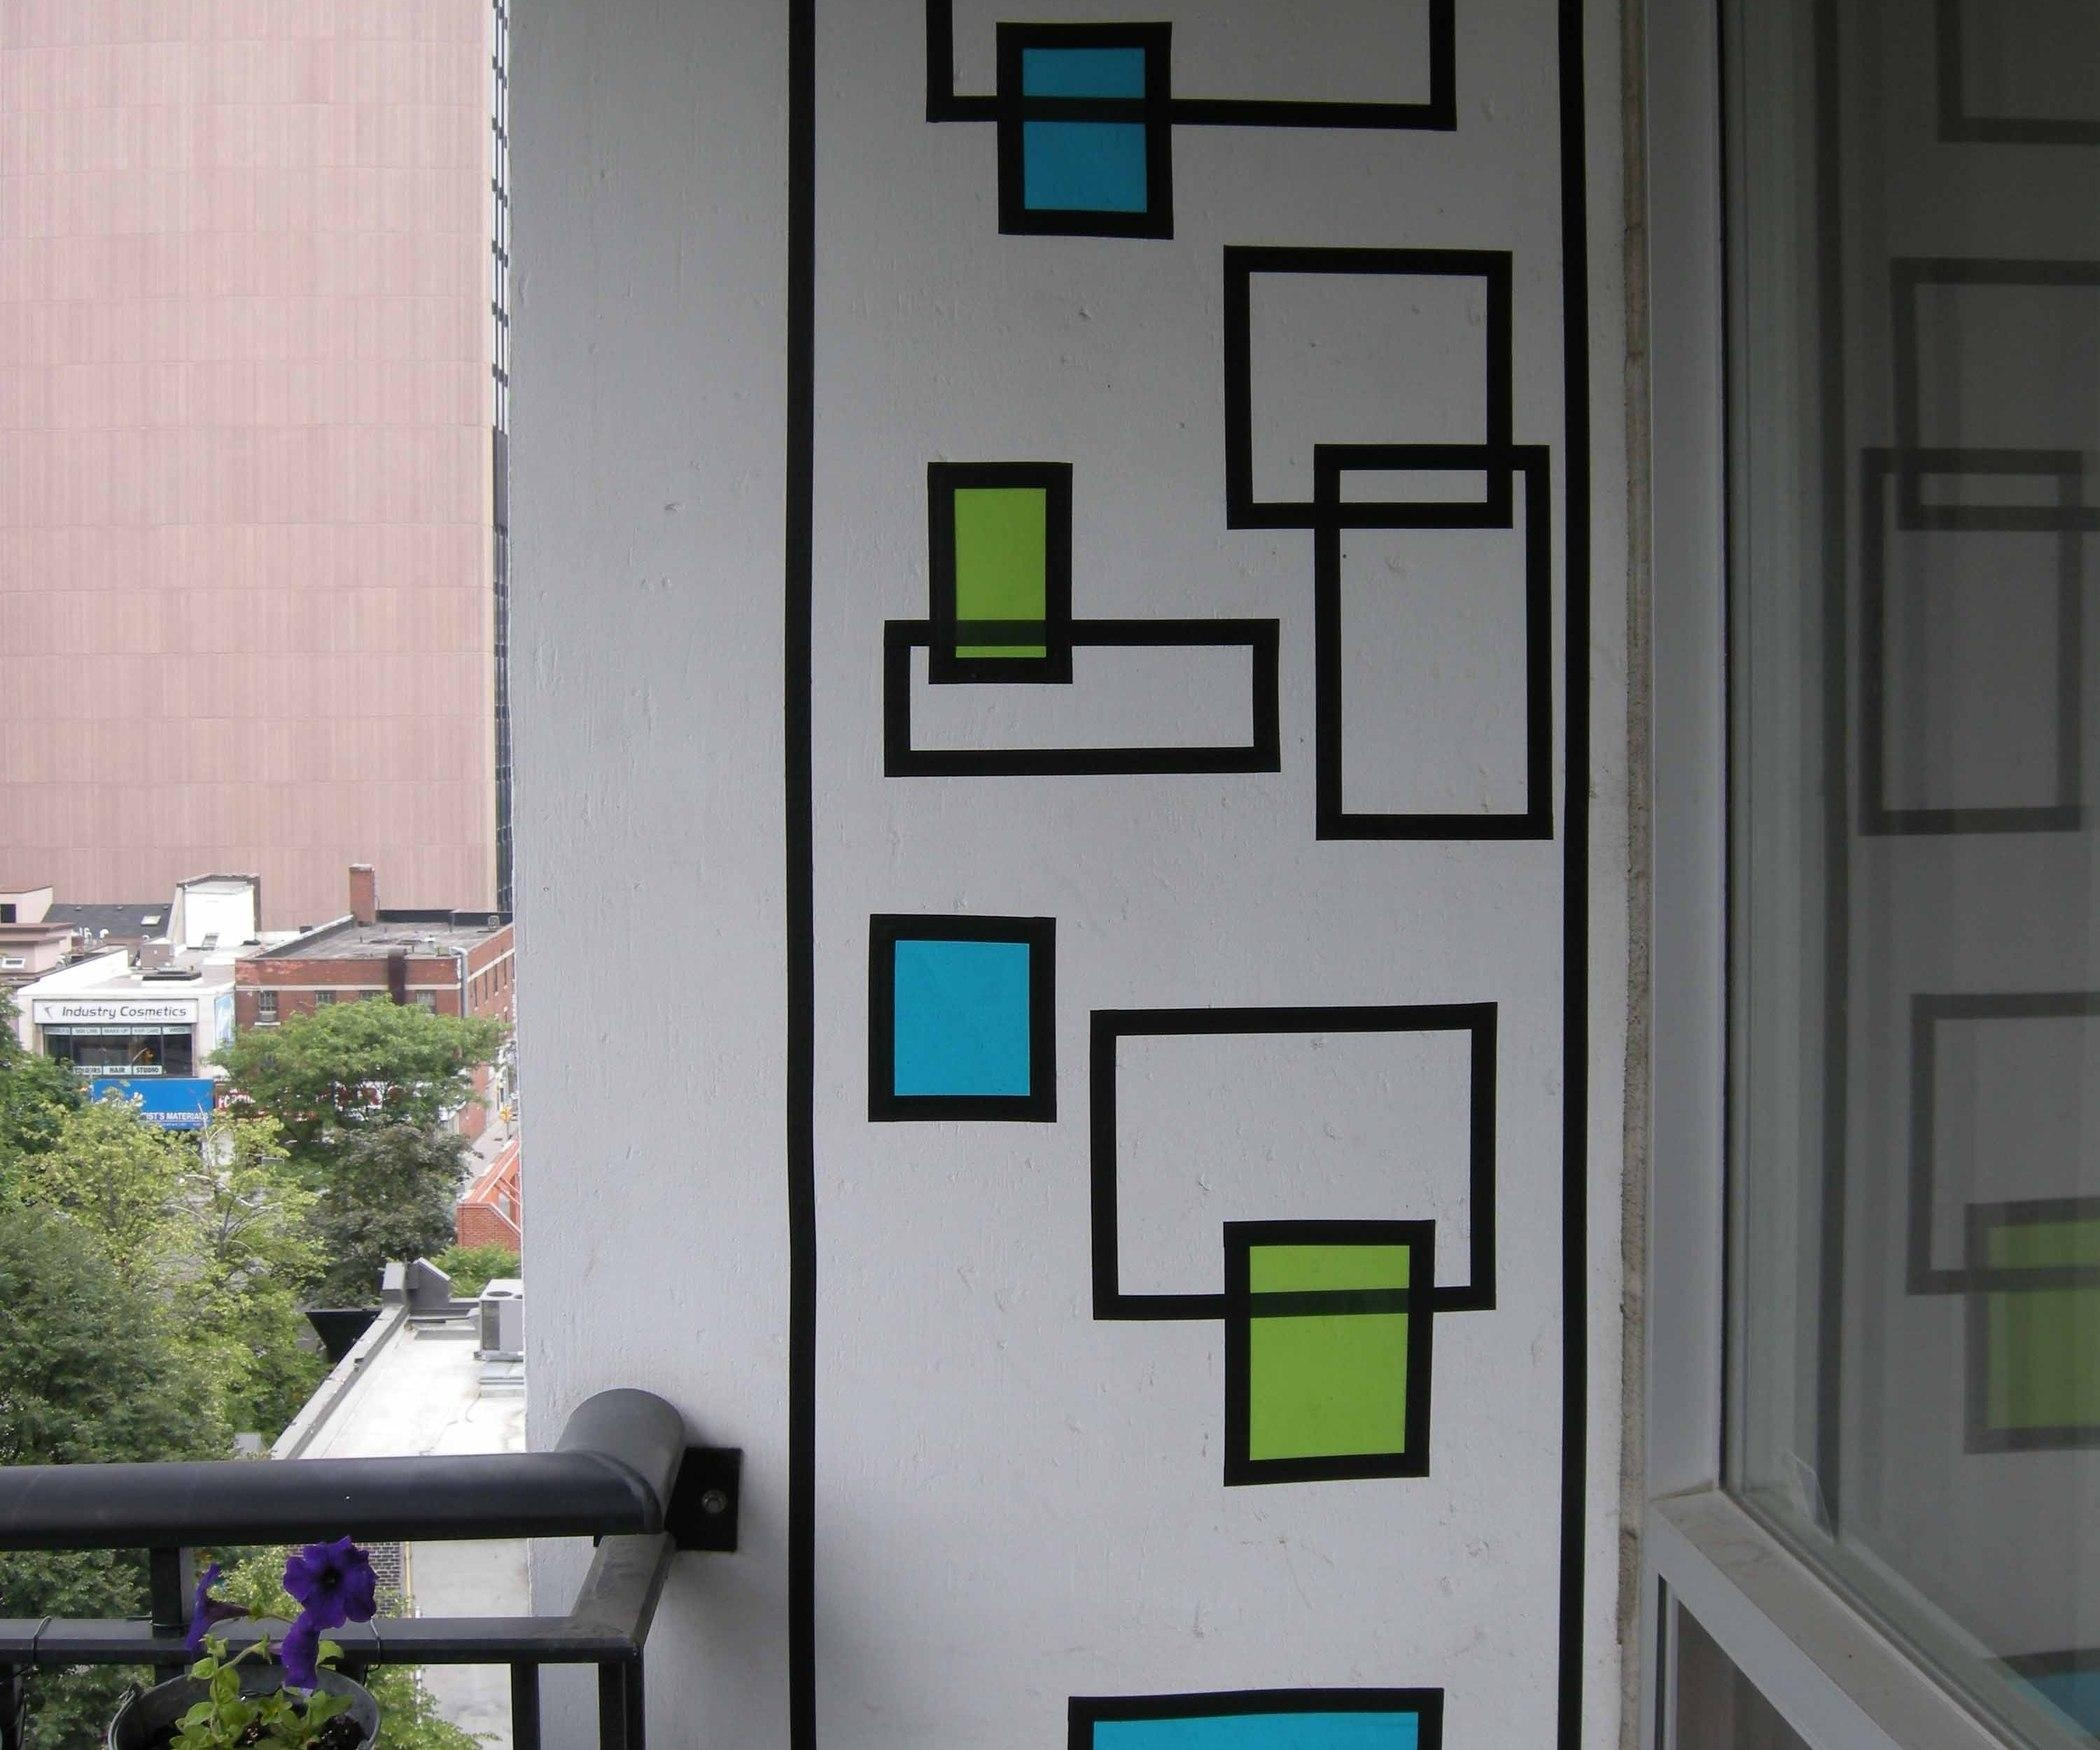 How To Create Wall Art With Electrical Tape: 6 Steps (With Pictures) Pertaining To Duct Tape Wall Art (View 11 of 20)